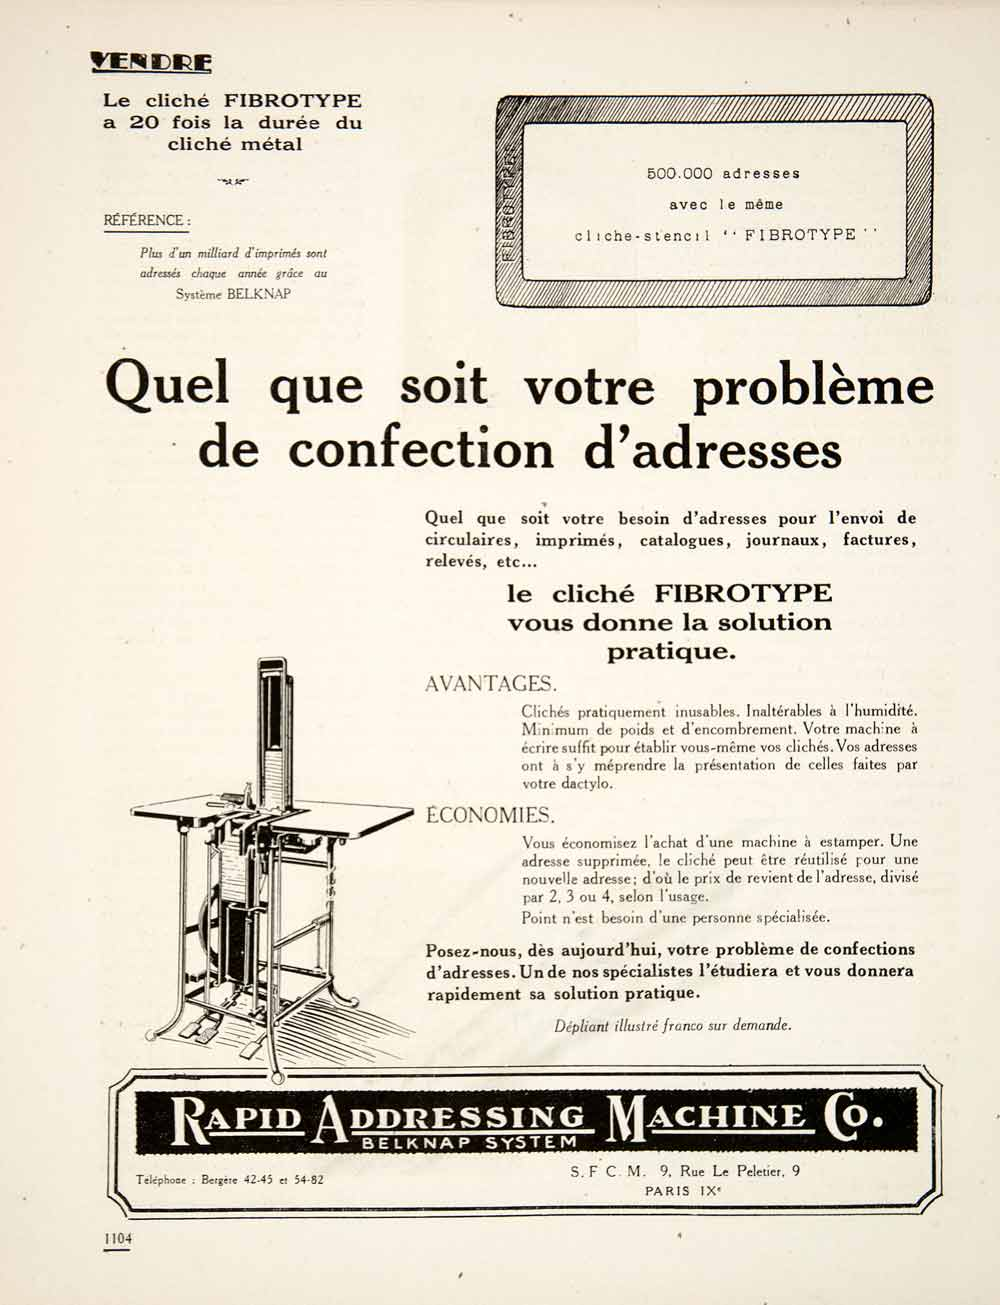 1924 Ad Fibrotype Cliche Rapid Addressing Machine Belknap French Printing VEN3